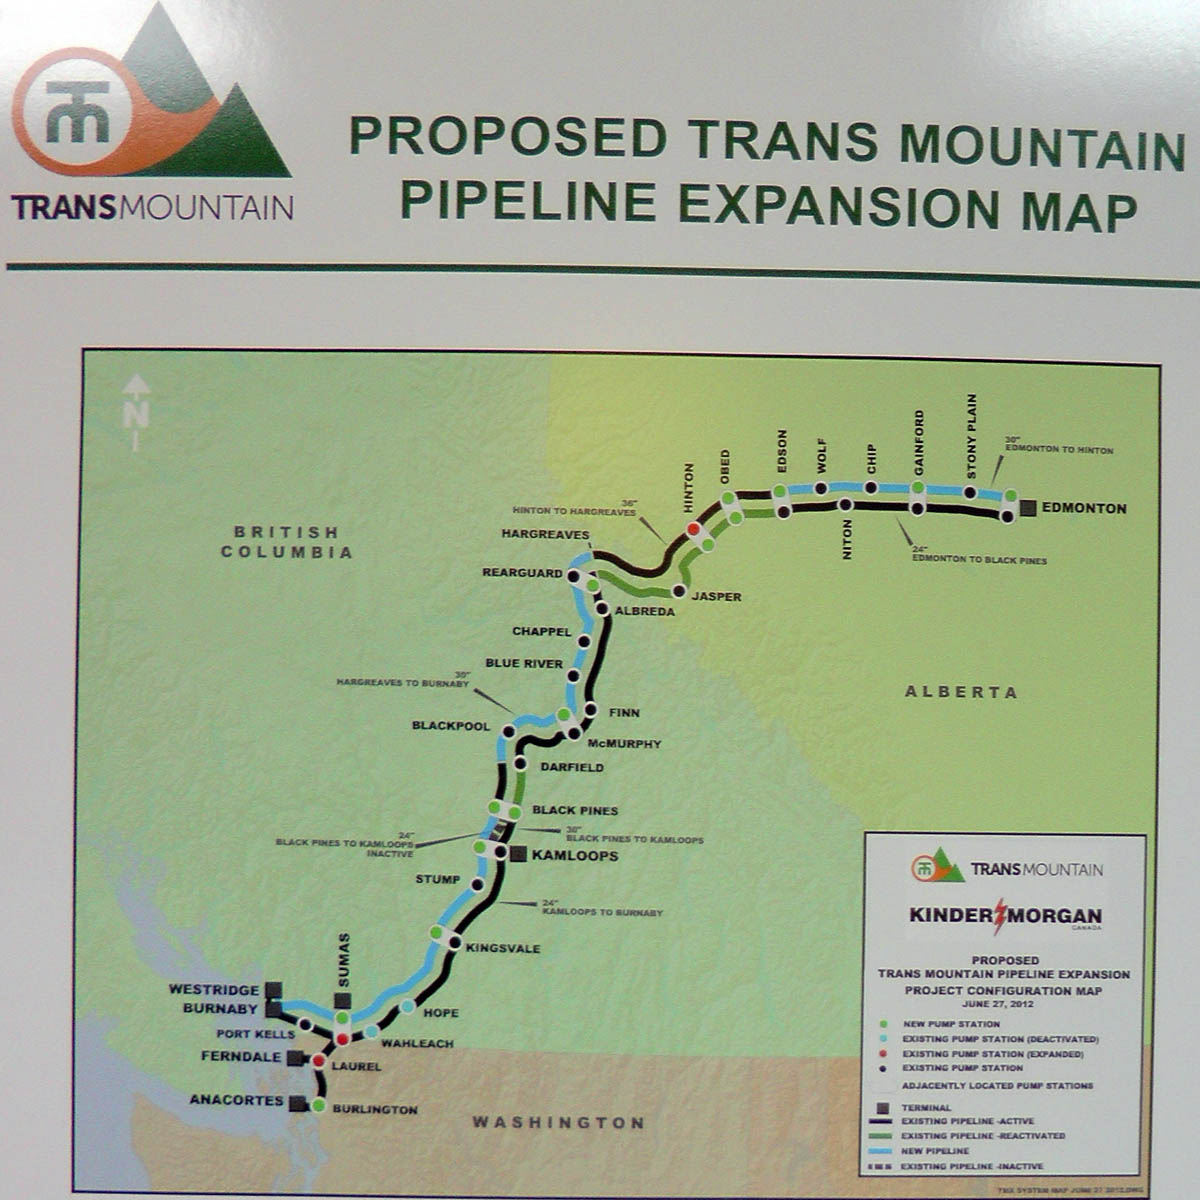 Reflections On Kinder Morgan Trans Mountain Pipeline